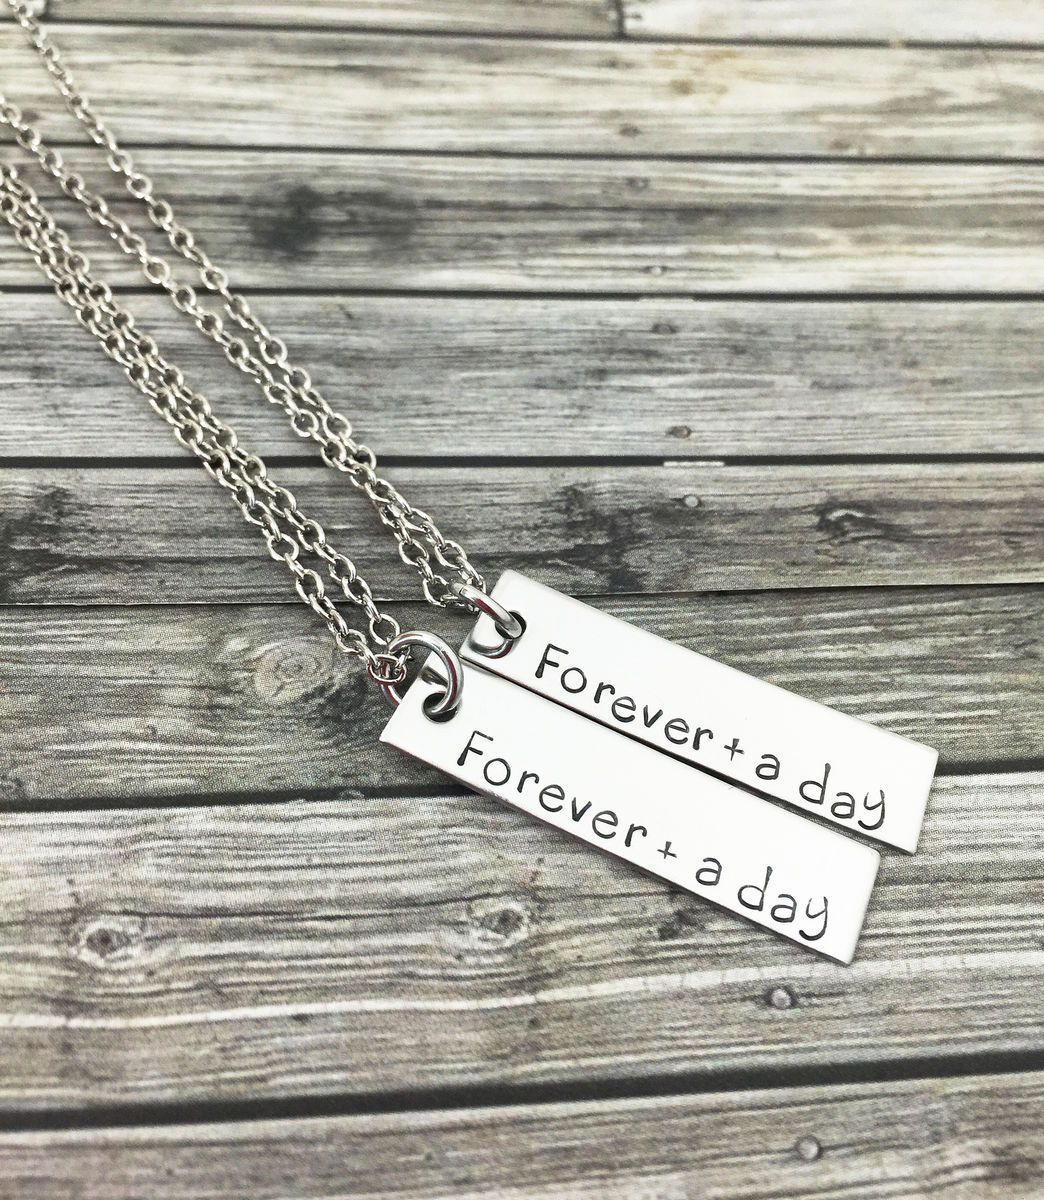 Forever and a day couples necklaces, Couples Jewelry Boyfriend Gift - product images  of